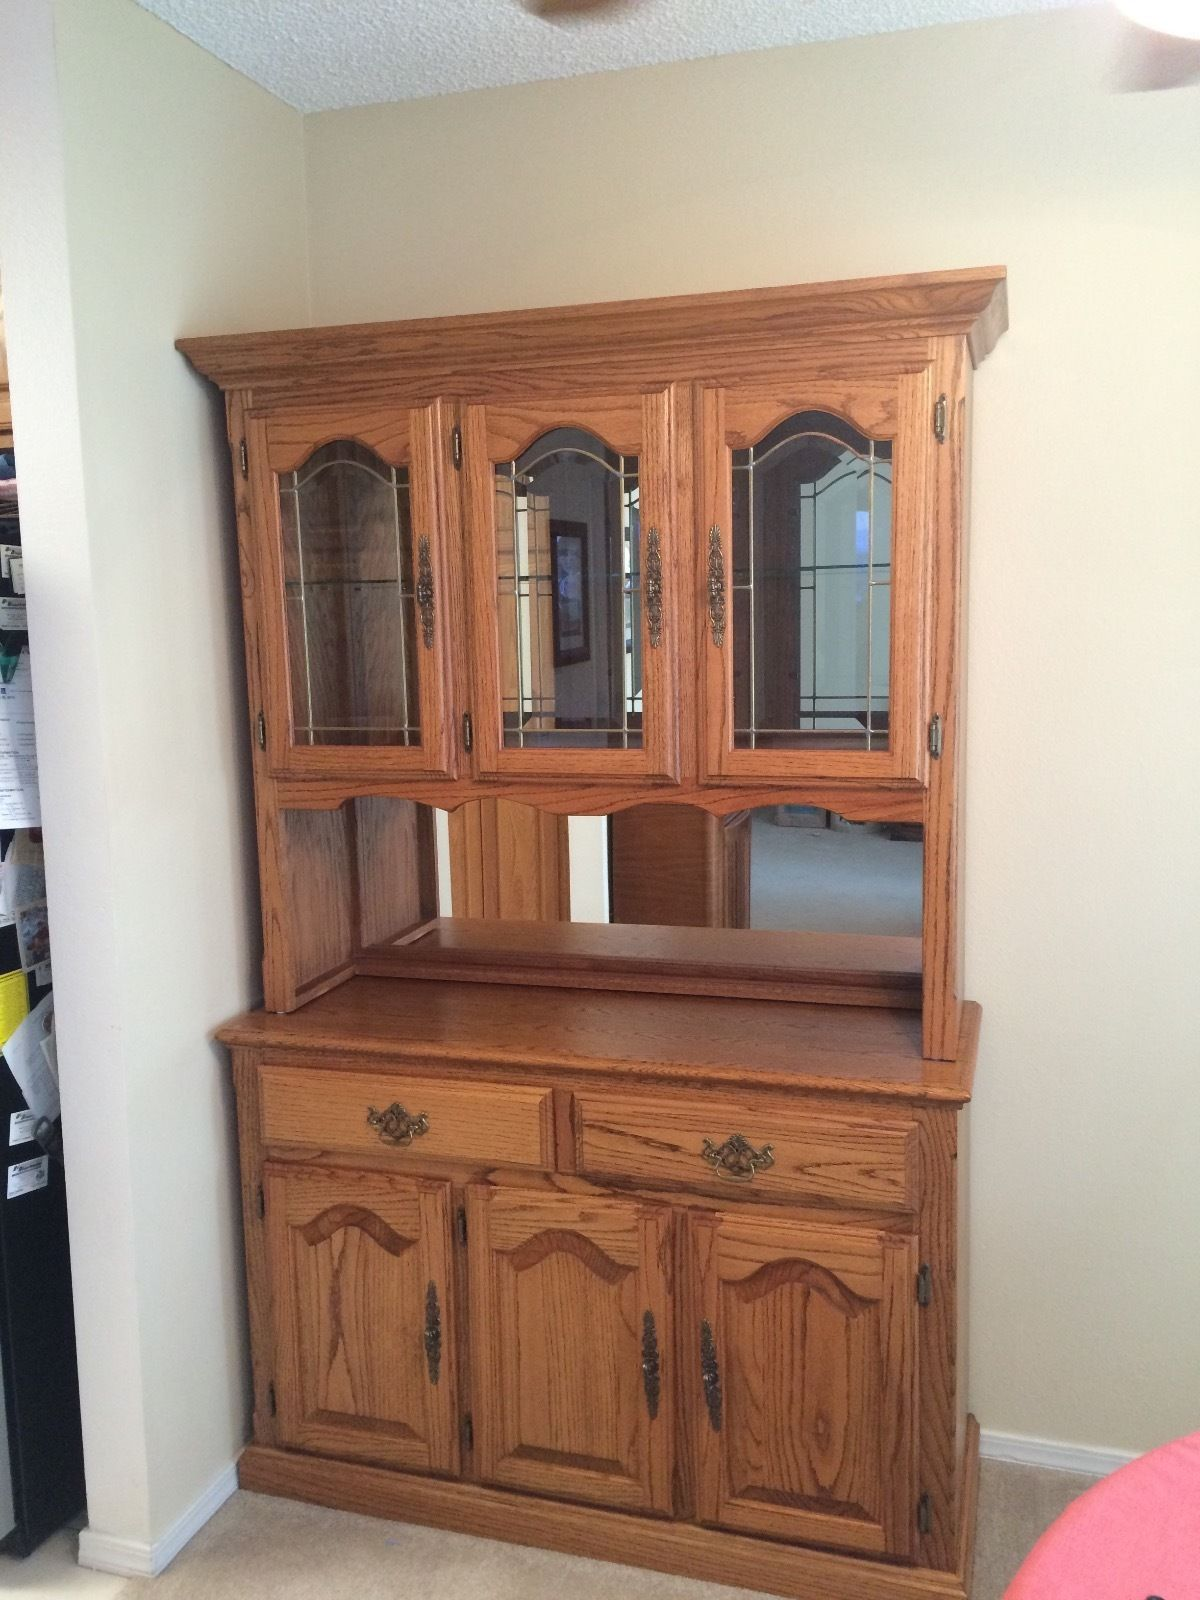 Beautiful Solid Oak Hutch and Buffet Storage Cabinet Display Home ...